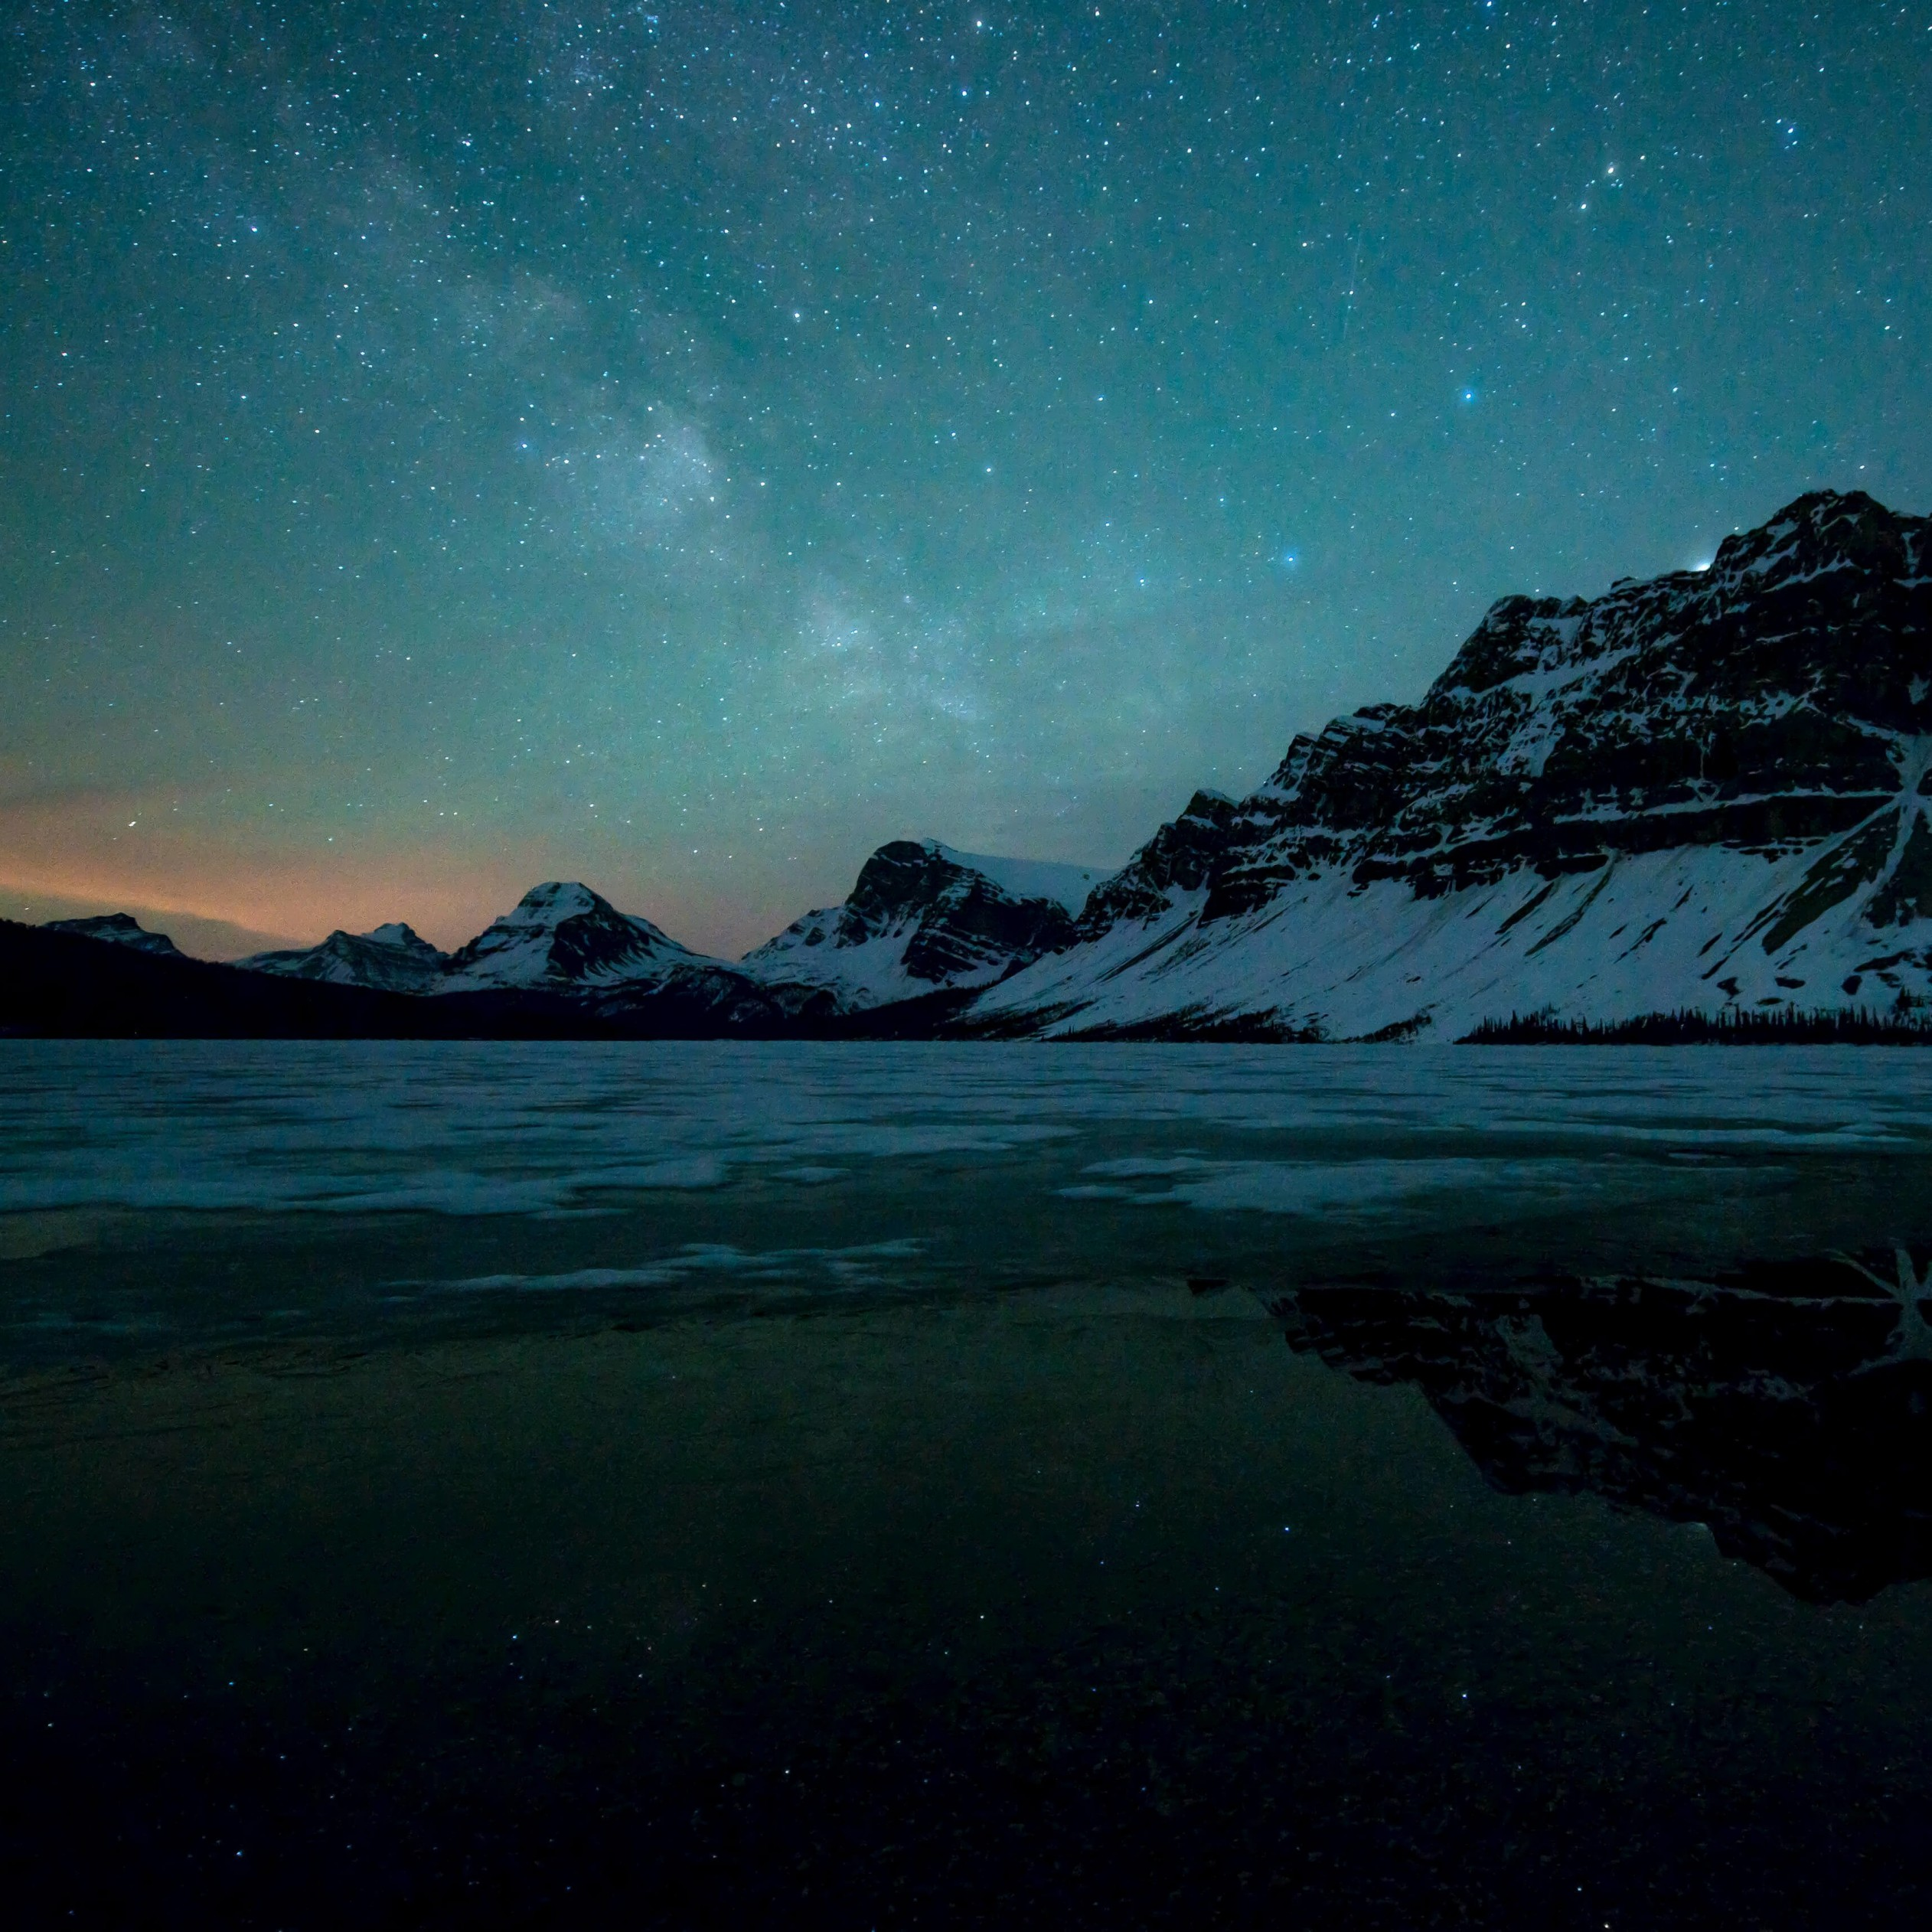 Milky Way over Bow Lake, Alberta, Canada Wallpaper for Apple iPad 4